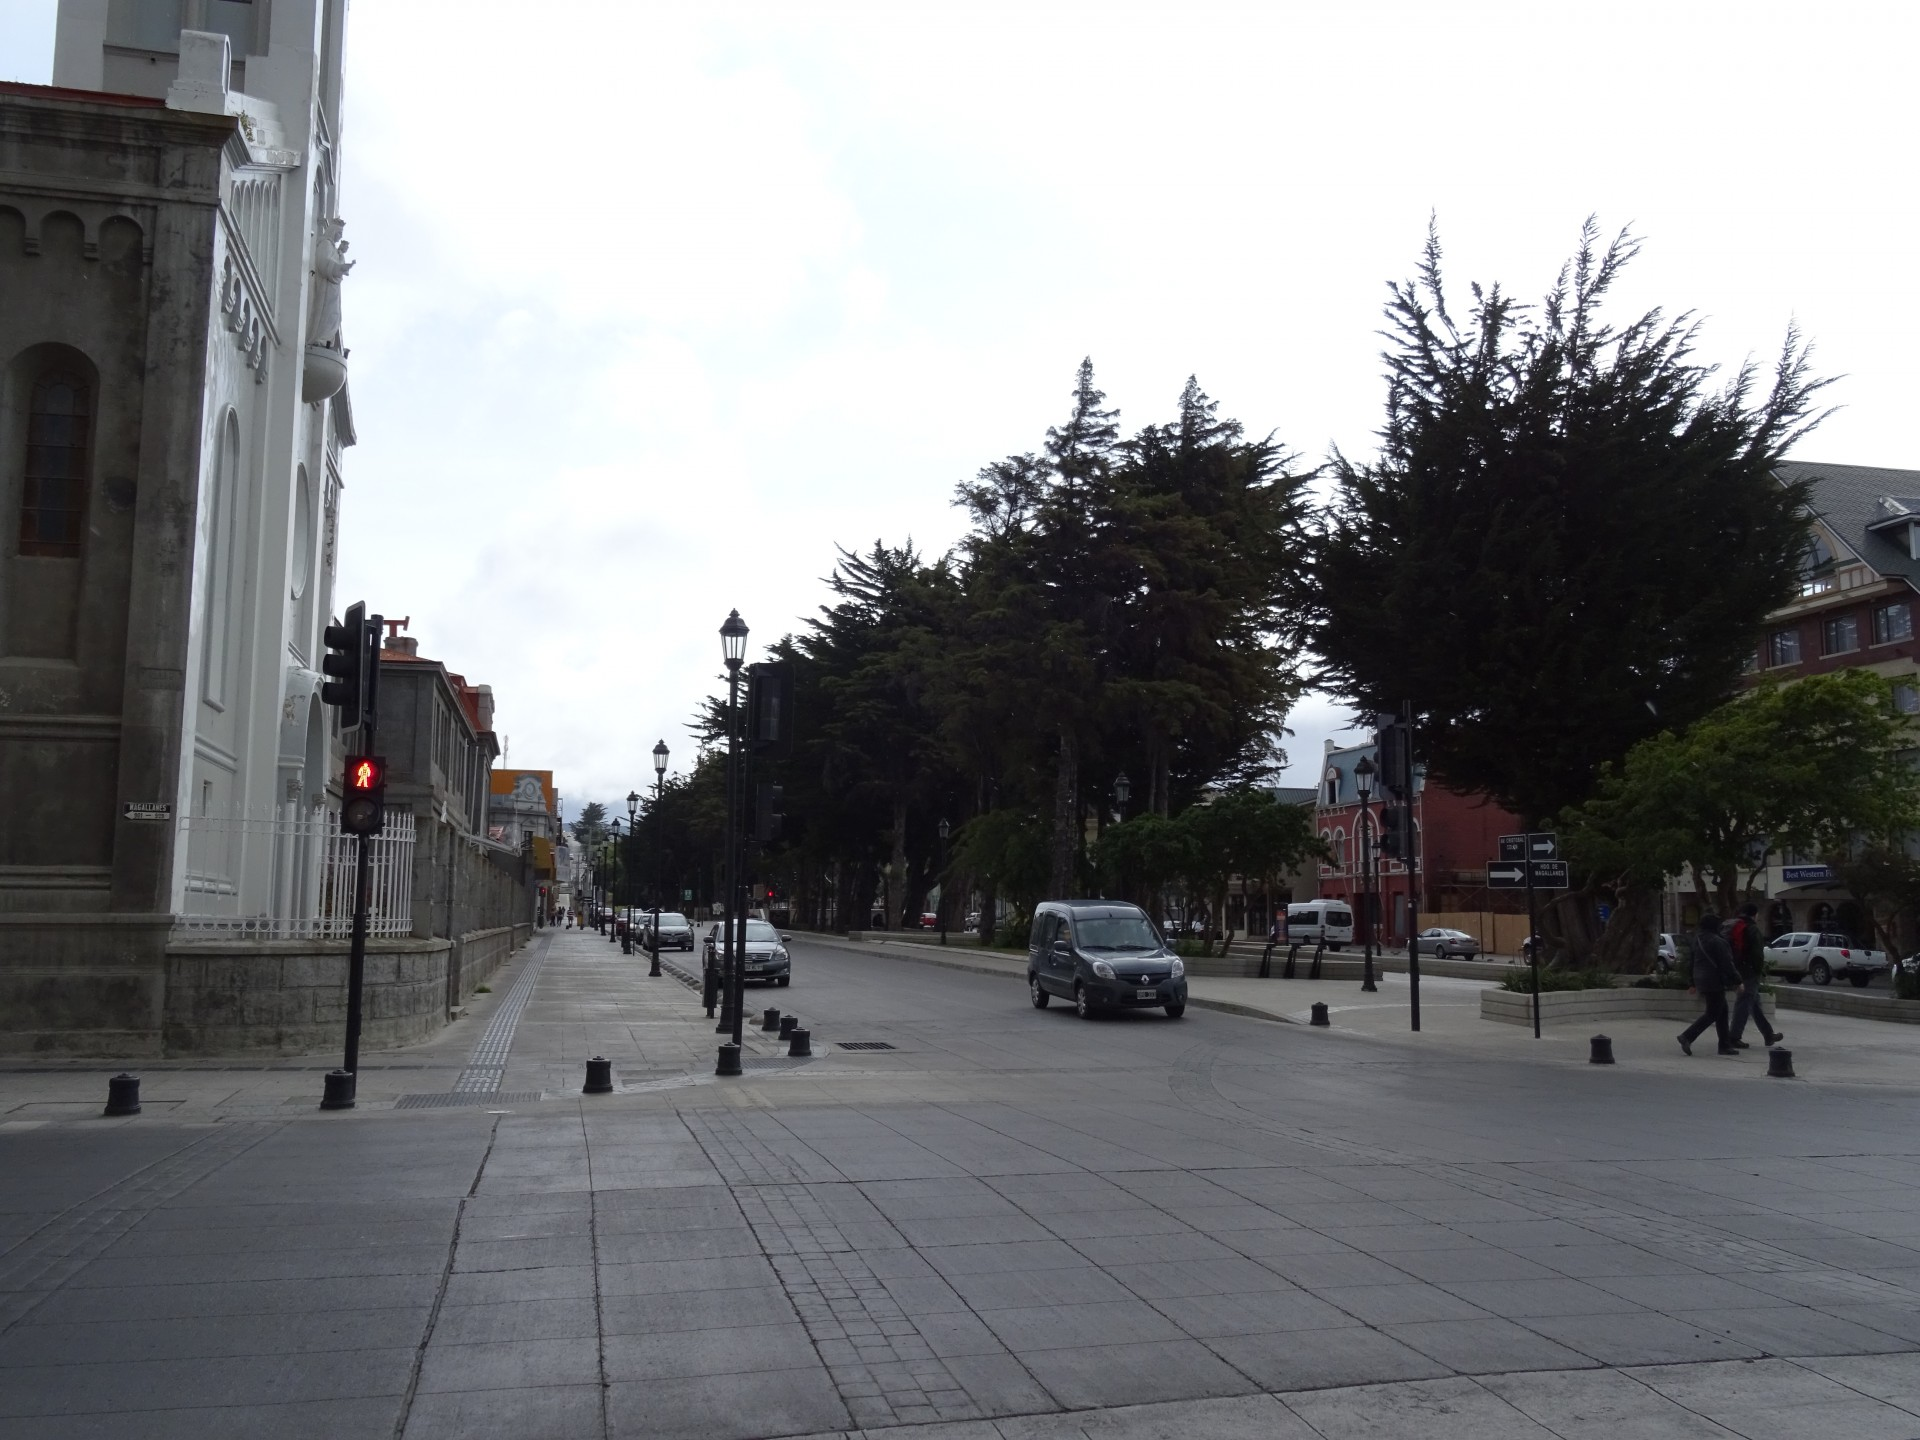 It's clean and neat in Punta Arenas.